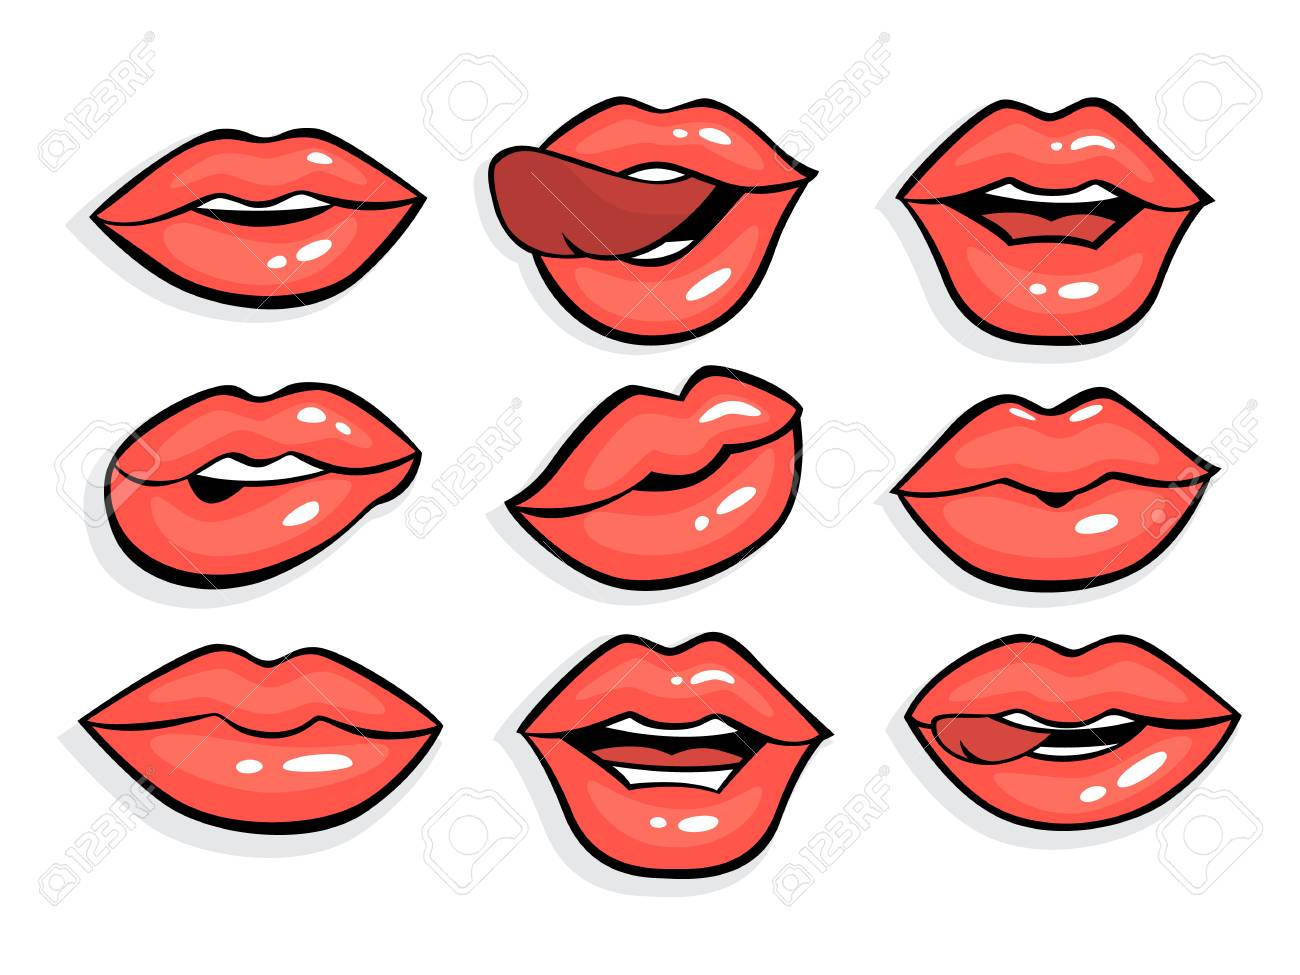 Set Of Sexy Red Pop Art Lips Royalty Free Cliparts Vectors And Stock Illustration Image 108971563